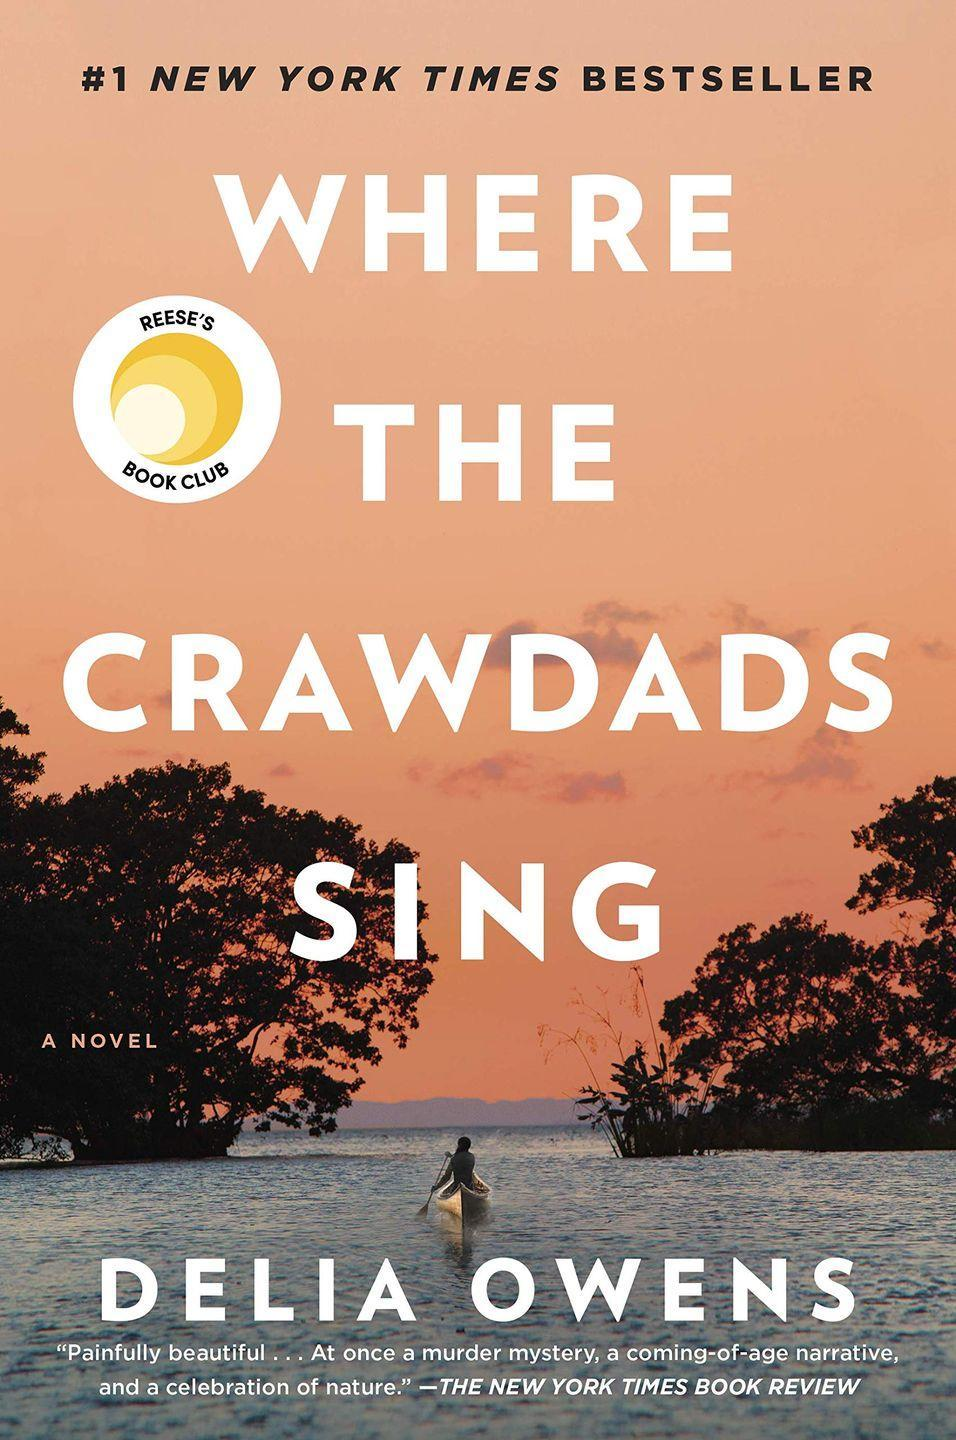 """<p><strong>Release date TBC</strong></p><p>Not content with bringing us Big Little Lies and Little Fires Everywhere, Reese Witherspoon has now set her sights on adapting Delia Owens' bestselling novel Where The Crawdads Sing for the big screen – with Normal People's Daisy Edgar-Jones starring in the lead role.</p><p>Released in 2018, the novel not only topped the New York Times bestsellers list and remained Amazon's most popular fiction book throughout 2019, but was also Reese's bookclub pick in September 2018.</p><p>It tells the story of Kya (Edgar-Jones), a young woman forced to raise herself on the North Carolina marshes when her family abandon her. Now an adult and successful author, Kya is accused of murdering her former boyfriend, a beloved member of the community and must piece together what actually happened. </p><p><a class=""""link rapid-noclick-resp"""" href=""""https://go.redirectingat.com?id=127X1599956&url=https%3A%2F%2Fwww.waterstones.com%2Fbook%2Fwhere-the-crawdads-sing%2Fdelia-owens%2F9781472154668&sref=https%3A%2F%2Fwww.redonline.co.uk%2Freviews%2Ffilm-reviews%2Fg32399204%2Fbooks-turned-into-tv-shows%2F"""" rel=""""nofollow noopener"""" target=""""_blank"""" data-ylk=""""slk:SHOP THE BOOK HERE"""">SHOP THE BOOK HERE</a></p>"""